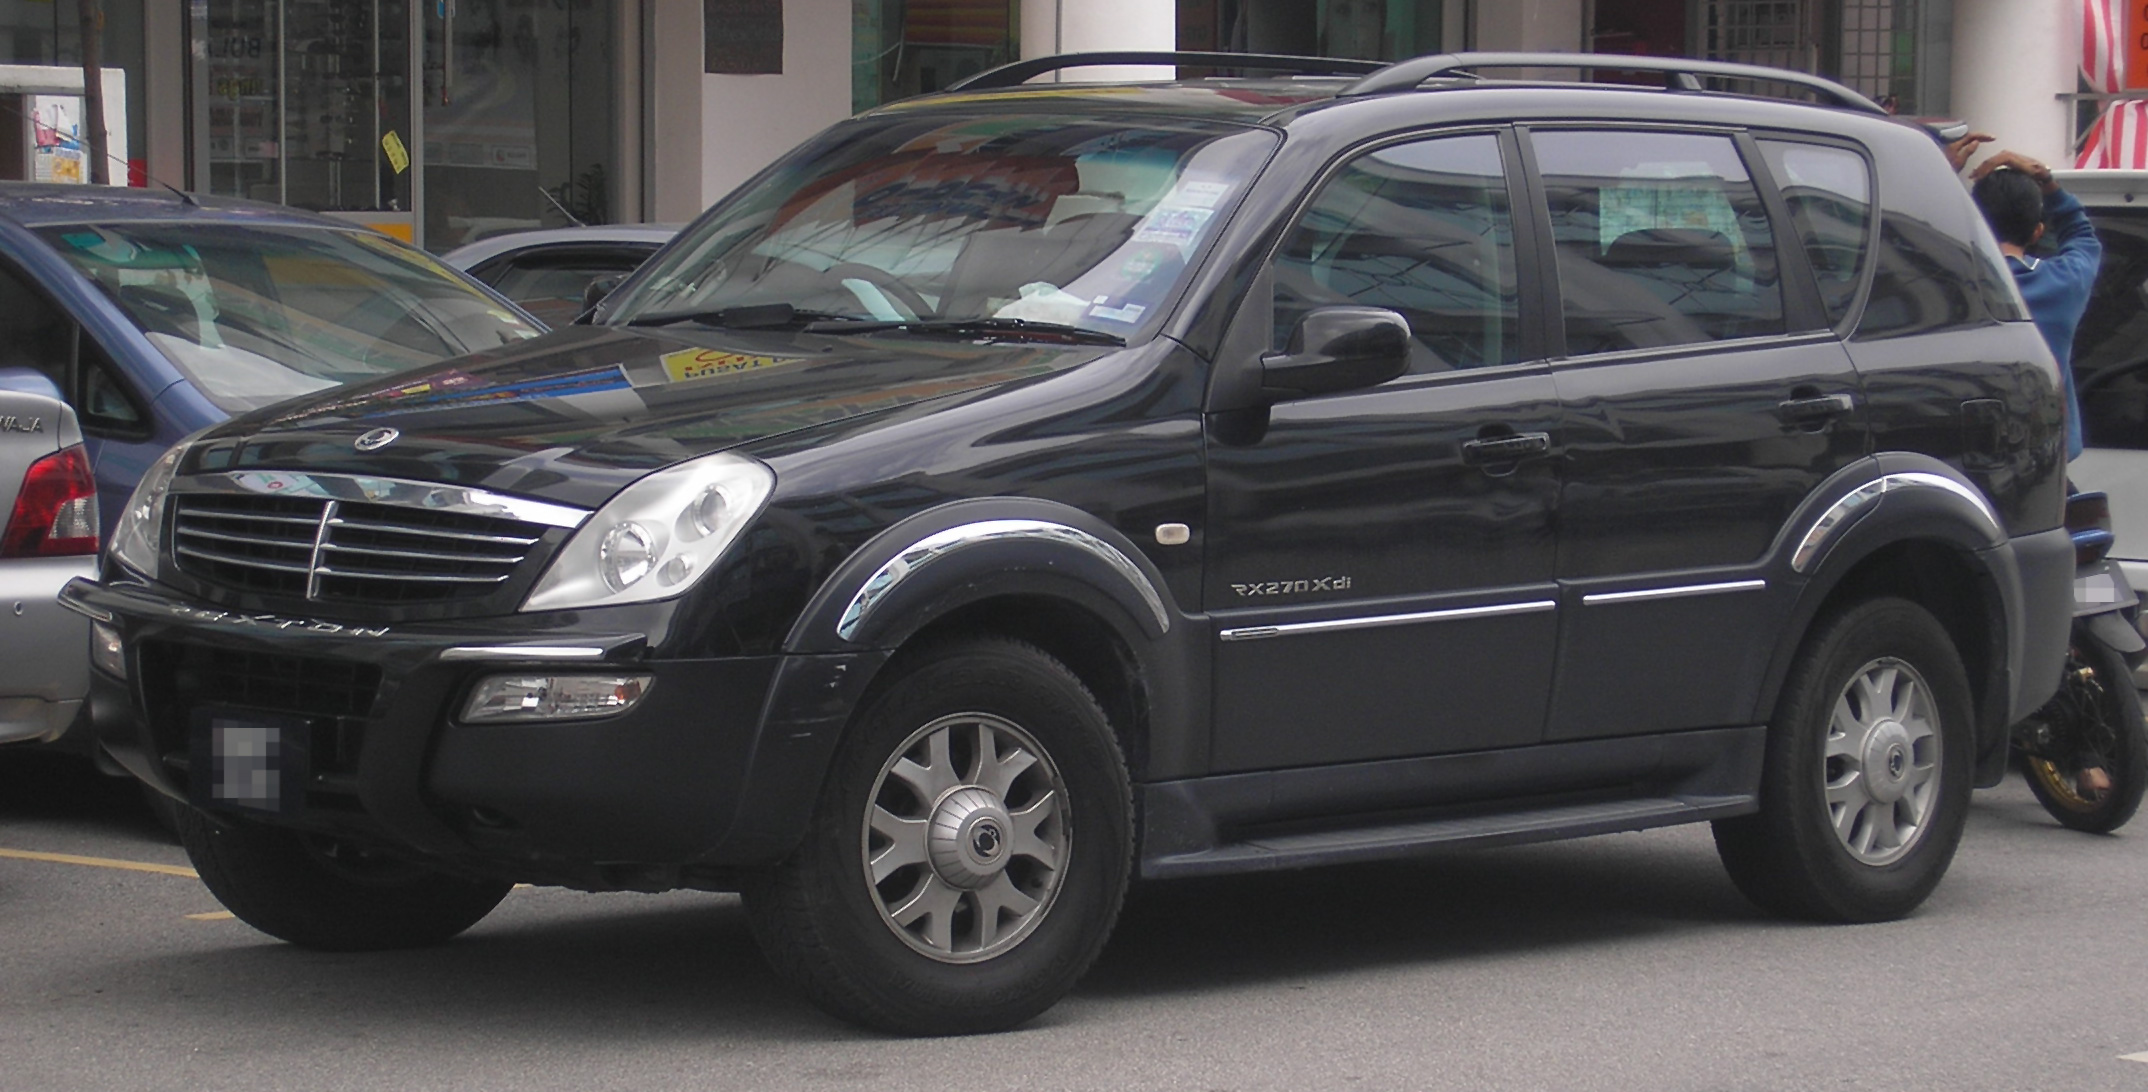 ssangyong rexton i 2002 pictures